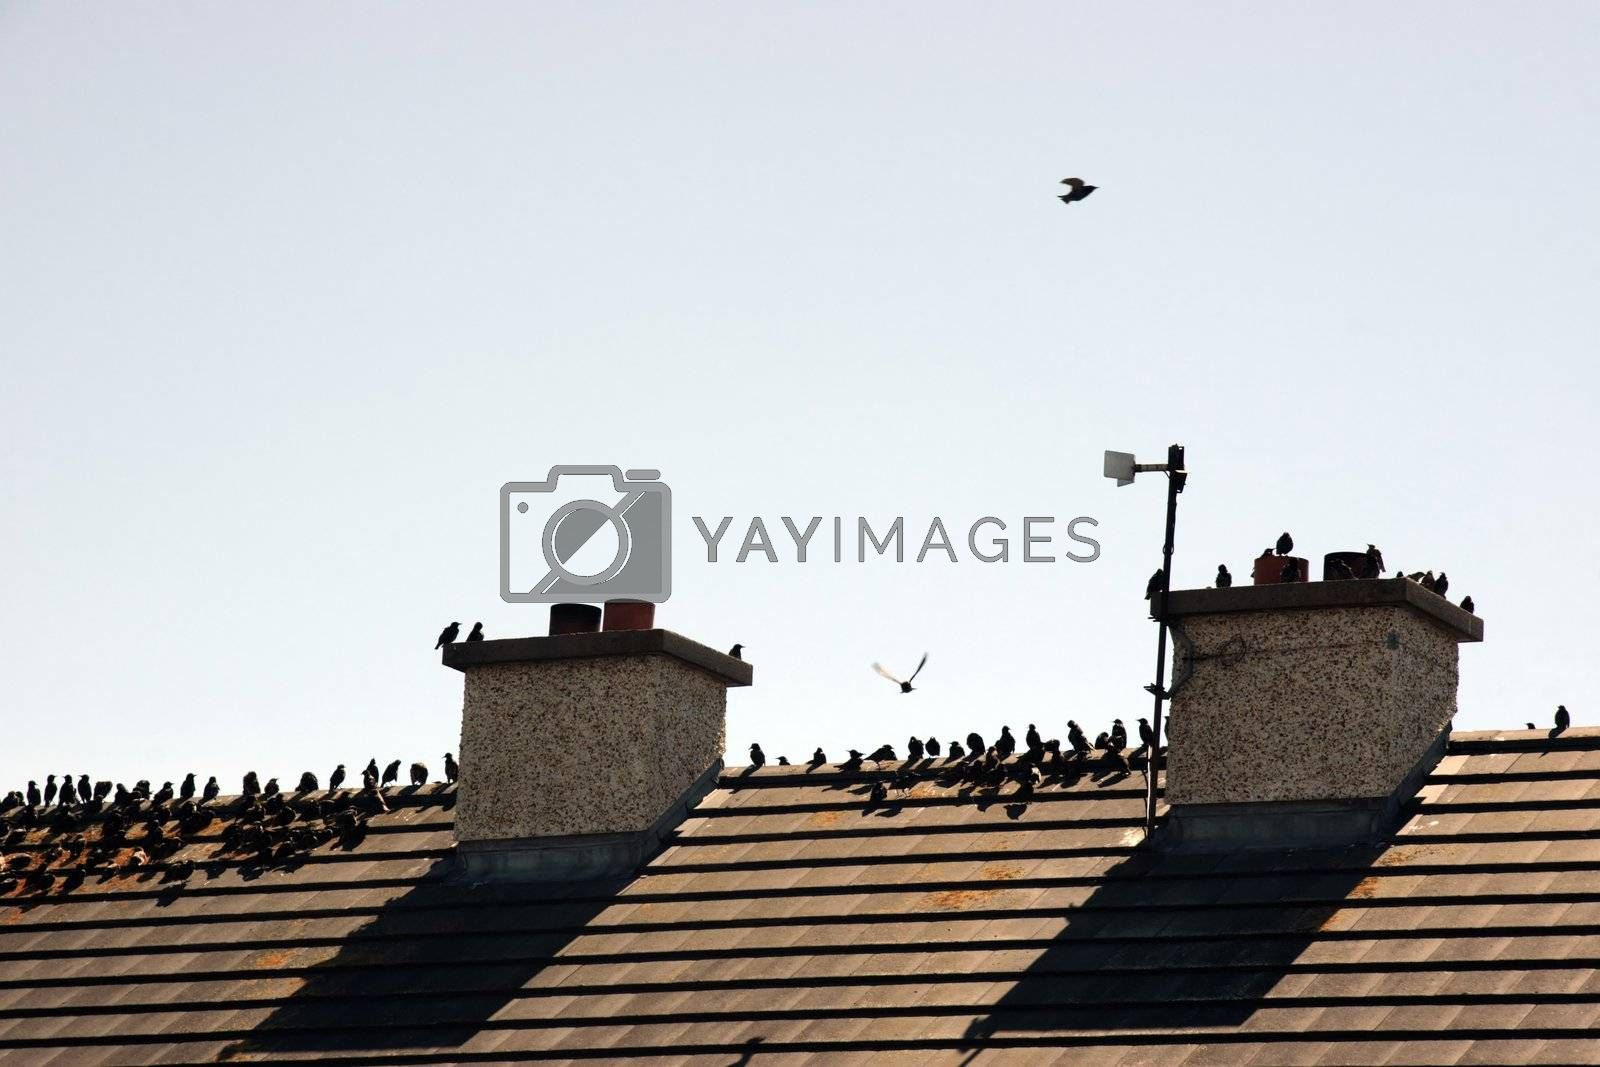 a gathering of birds on a roof